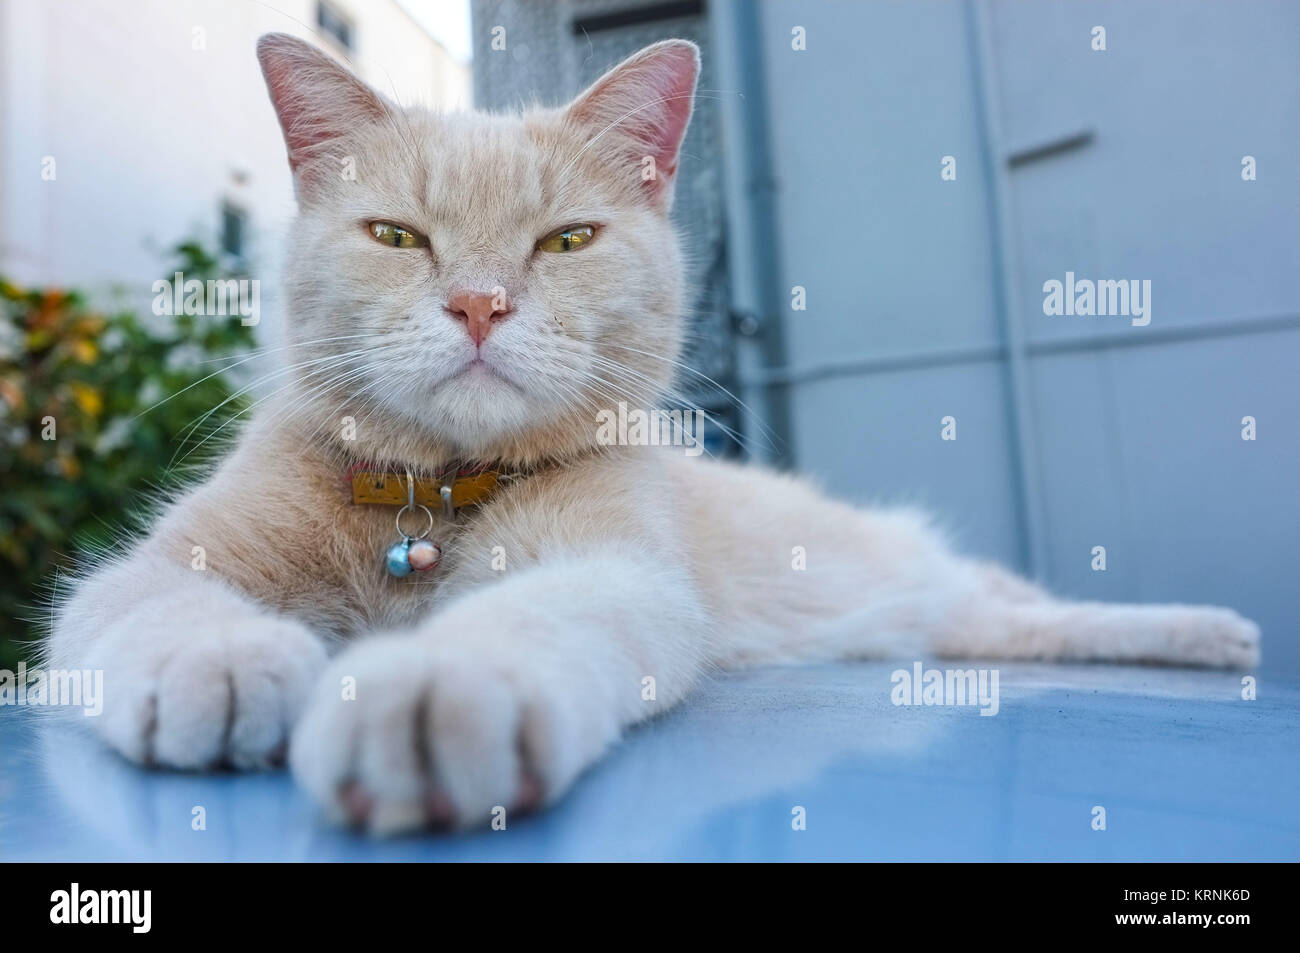 Cat resting on the roof of a car and looking at the camera. - Stock Image